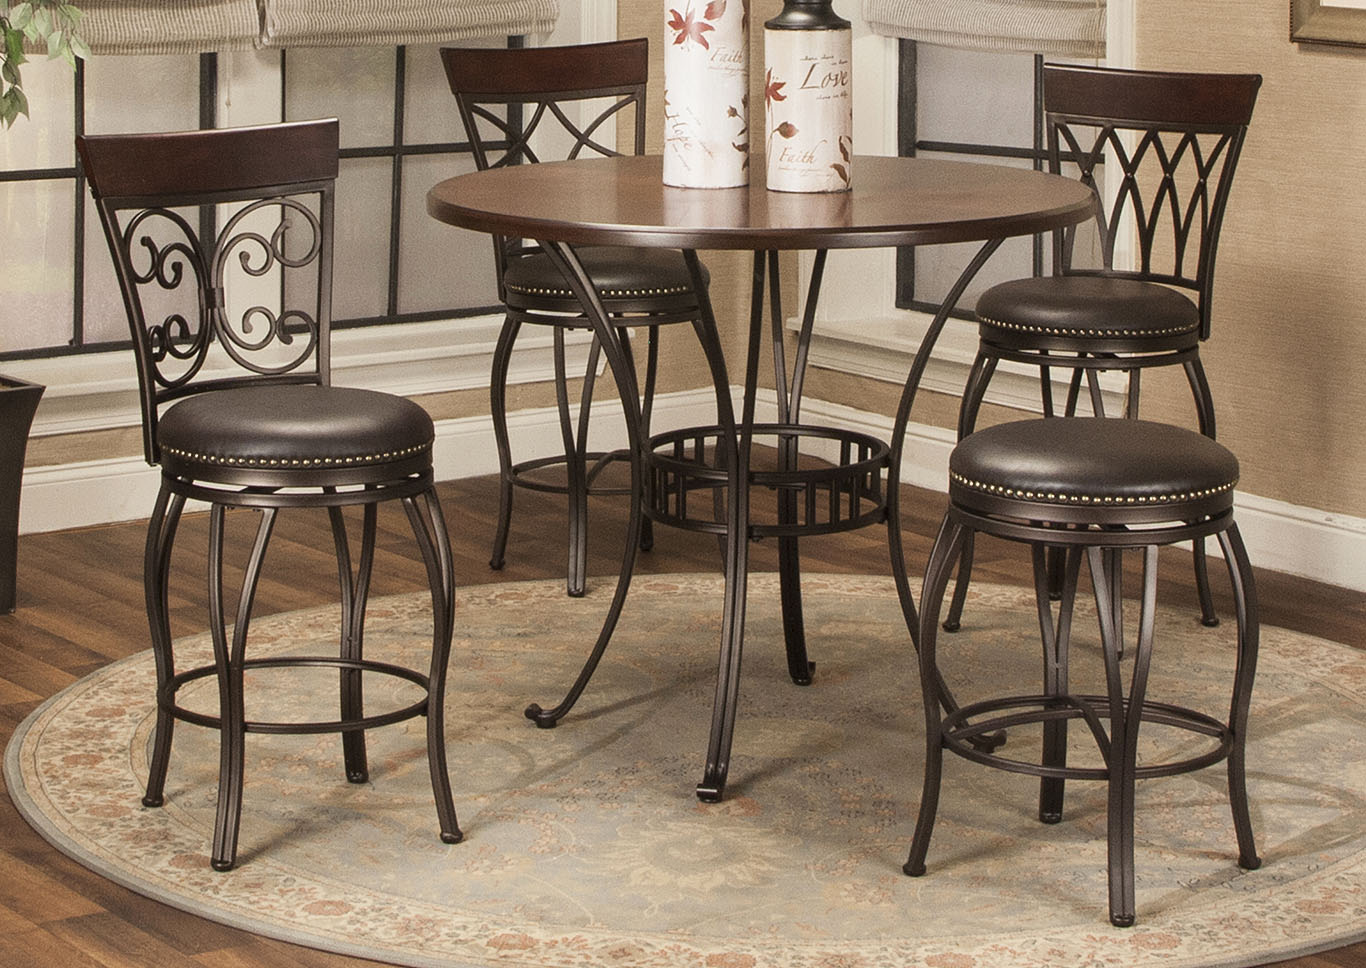 Bailey Dinette Table PKG,Huffman Koos